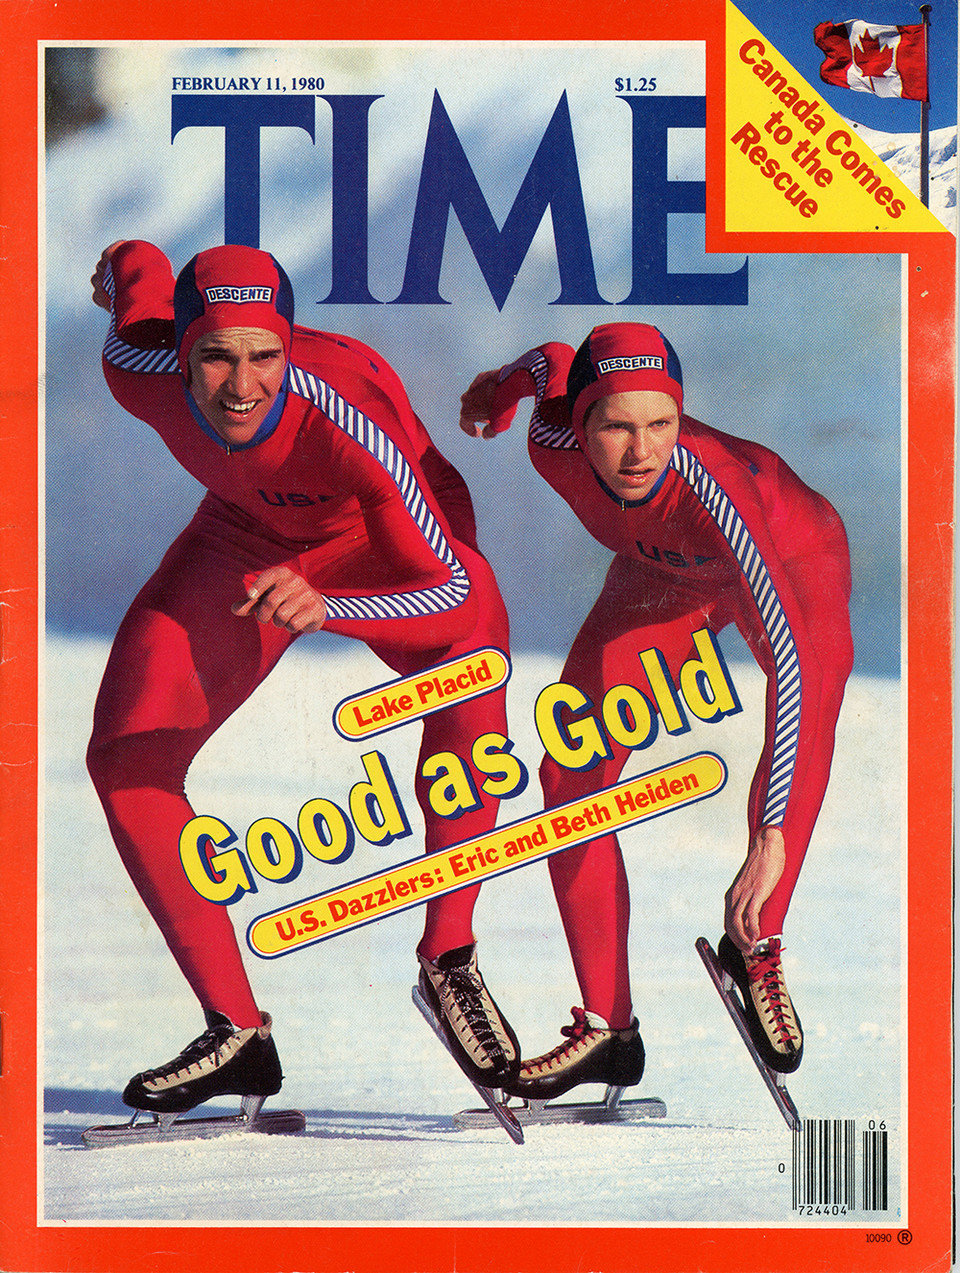 Eric and Beth Heiden on the cover of Time magazine in February 1980